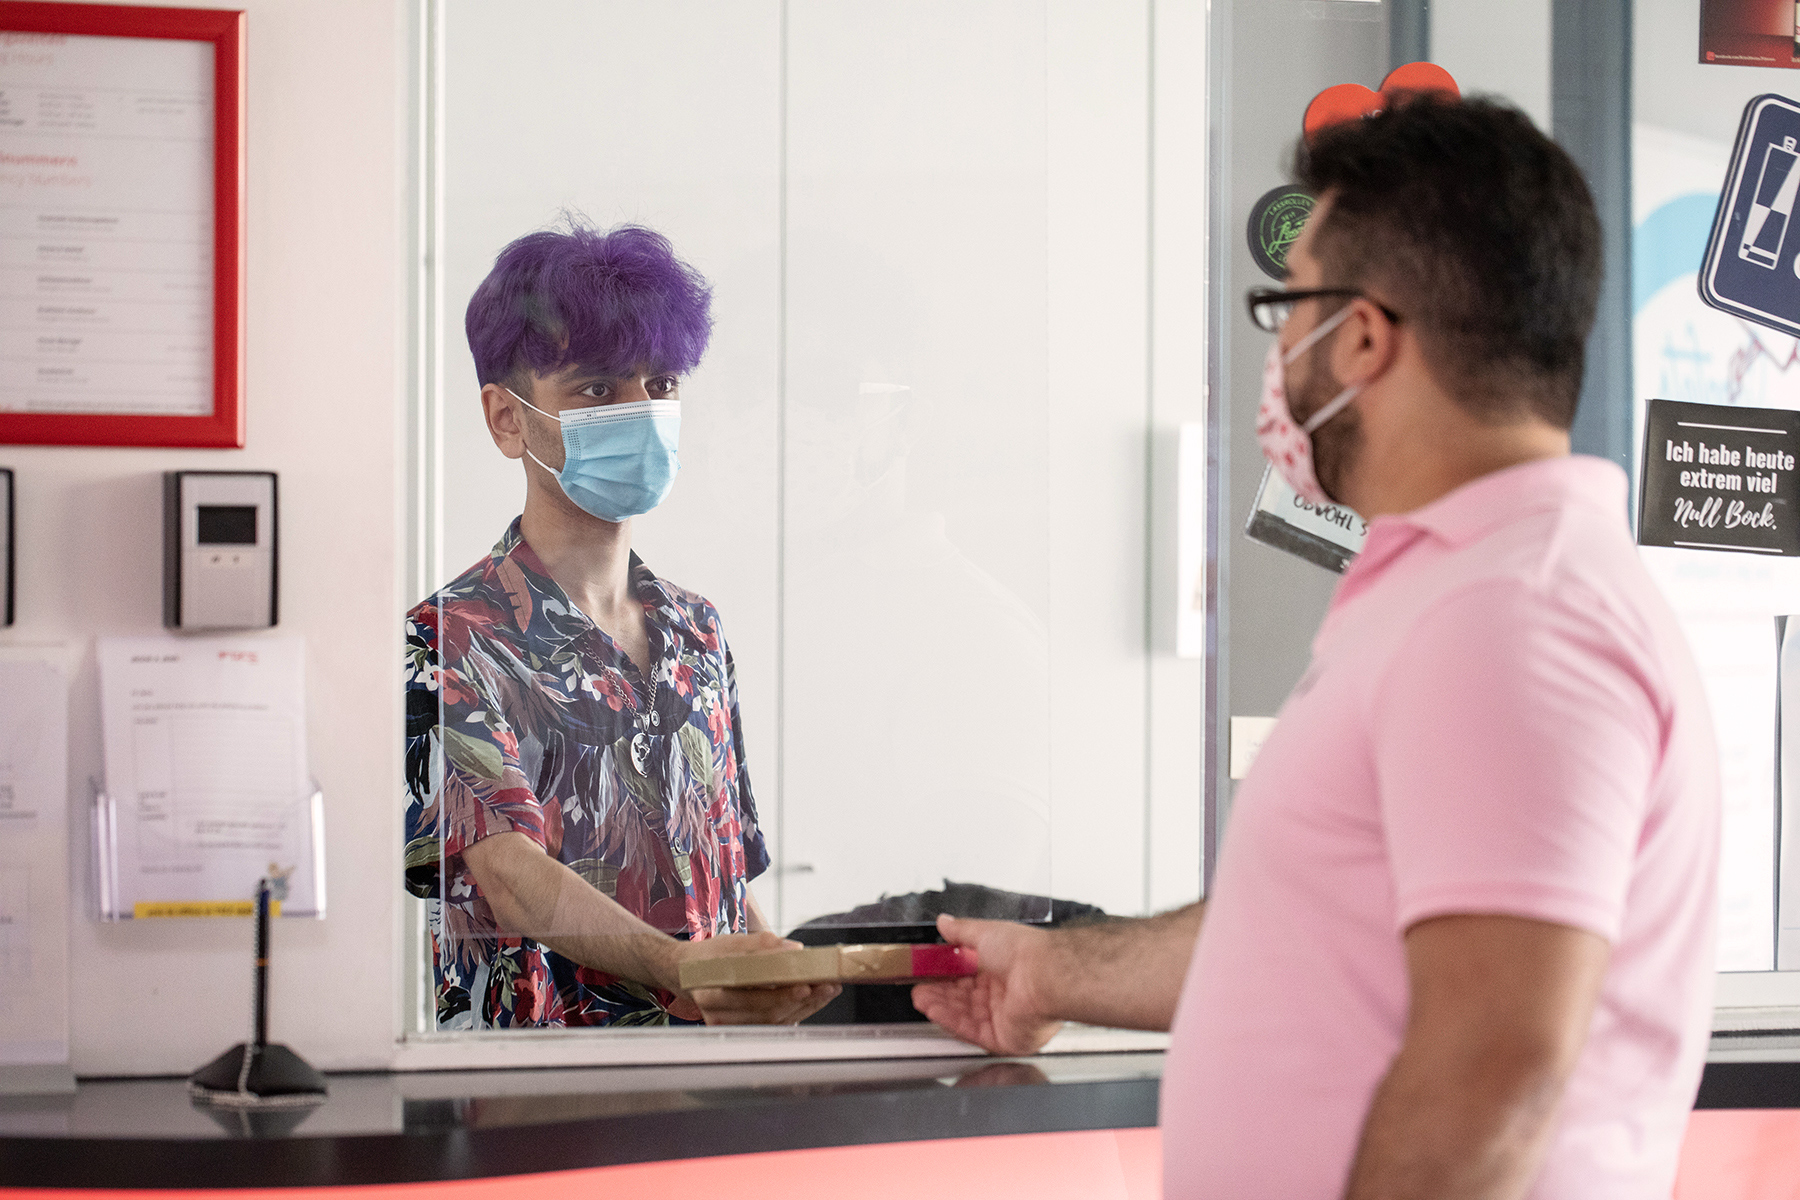 A person with purple hair and a colourful shirt hands a small parcel to another person with pink shirt, dark hair and glasses through a hole in a glass screen. They both wear surgical masks.